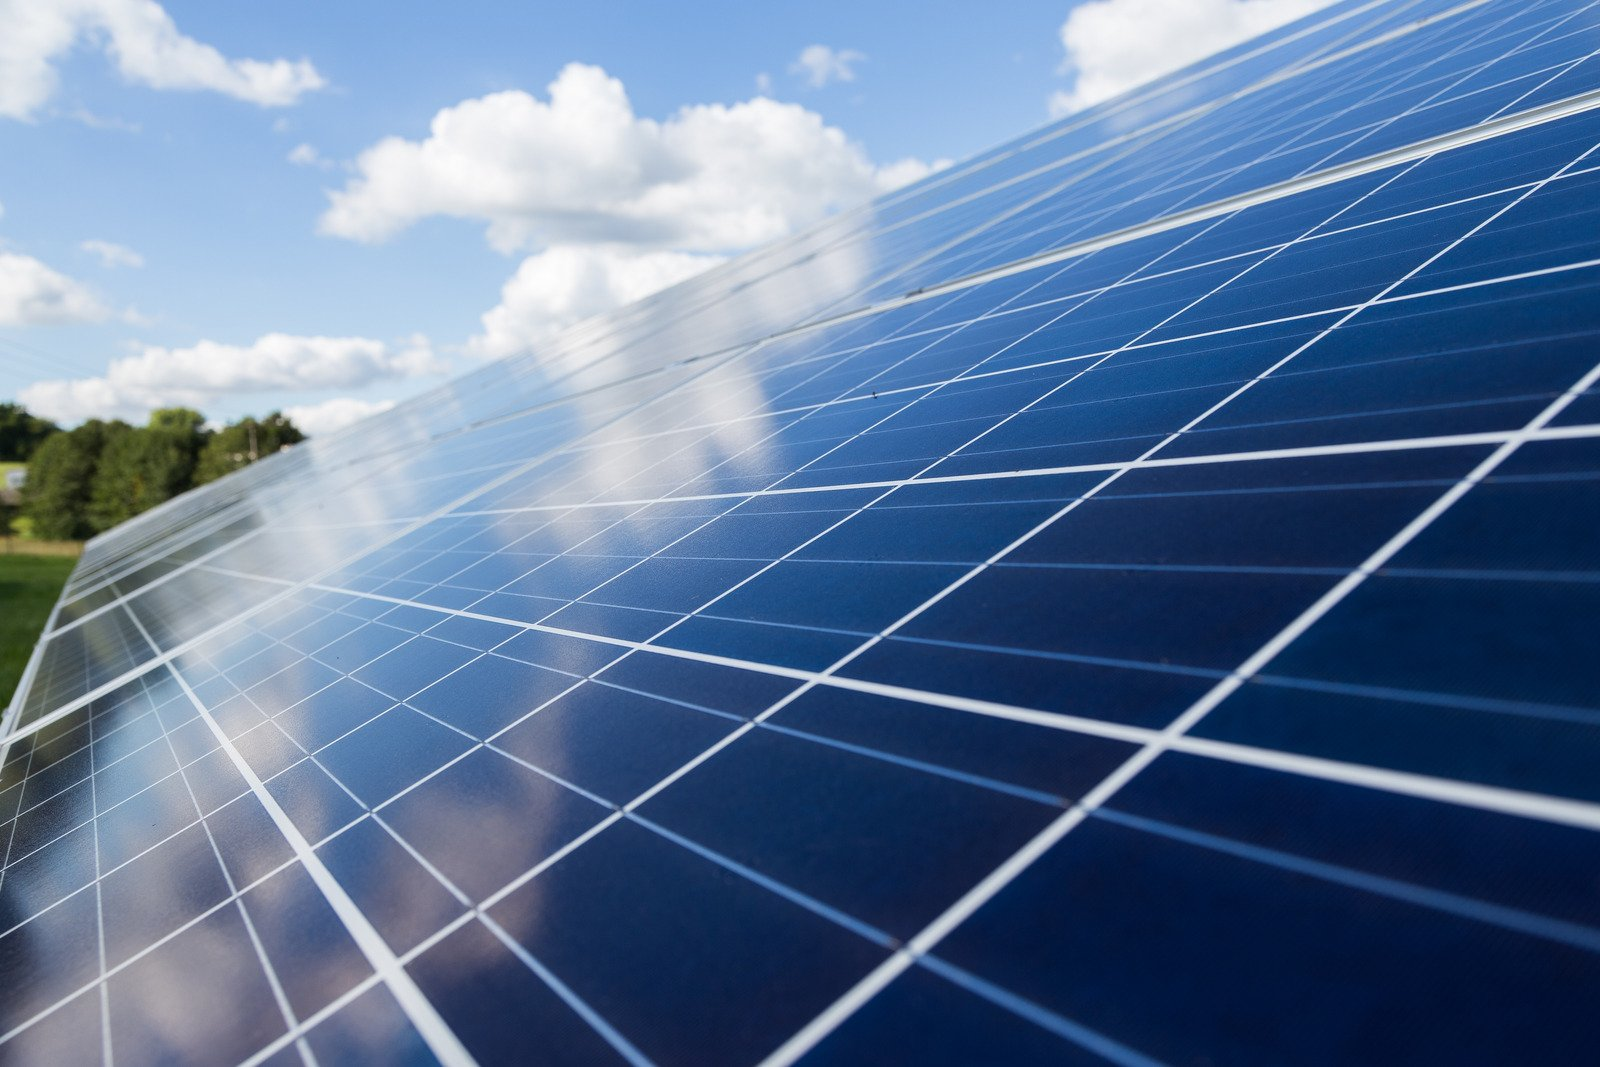 What Need to Look for When Buying Solar Panels